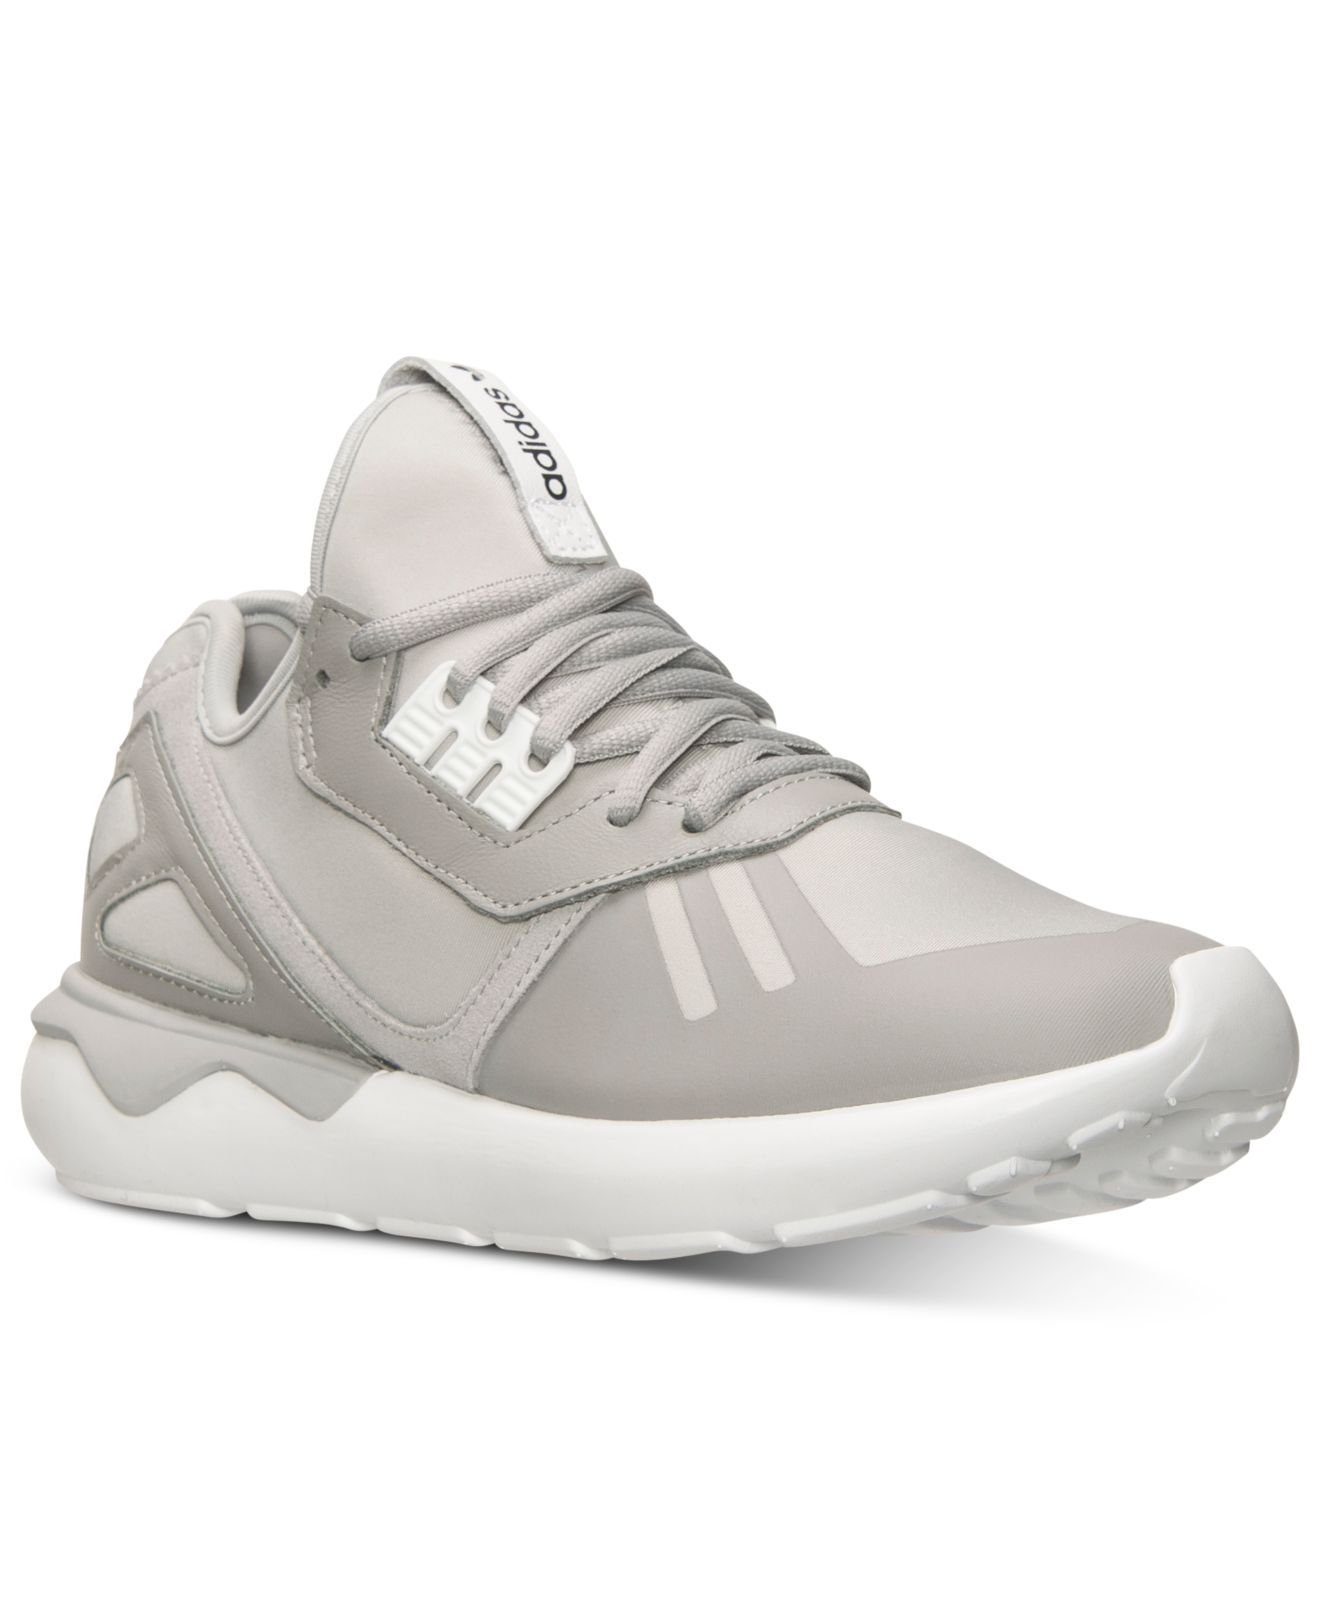 55eb689fa ... finishline b8f32 f375d spain lyst adidas mens originals tubular runner  casual sneakers from 090bc 3f0bb ...